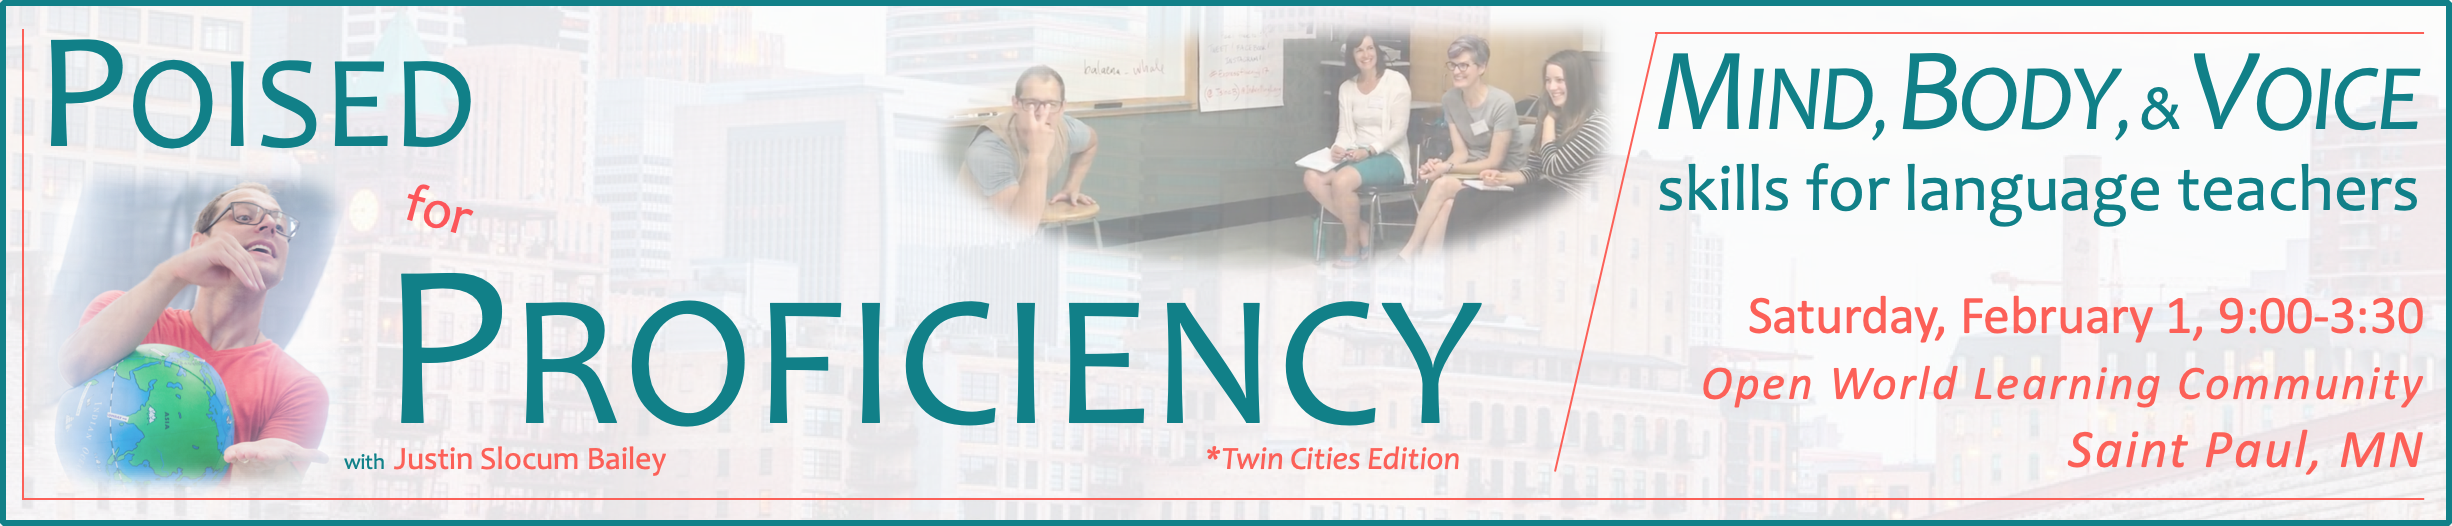 Banner announcing Poised for Proficiency Workshop at Open World Learning Community in Saint Paul, MN, February 1, 2020